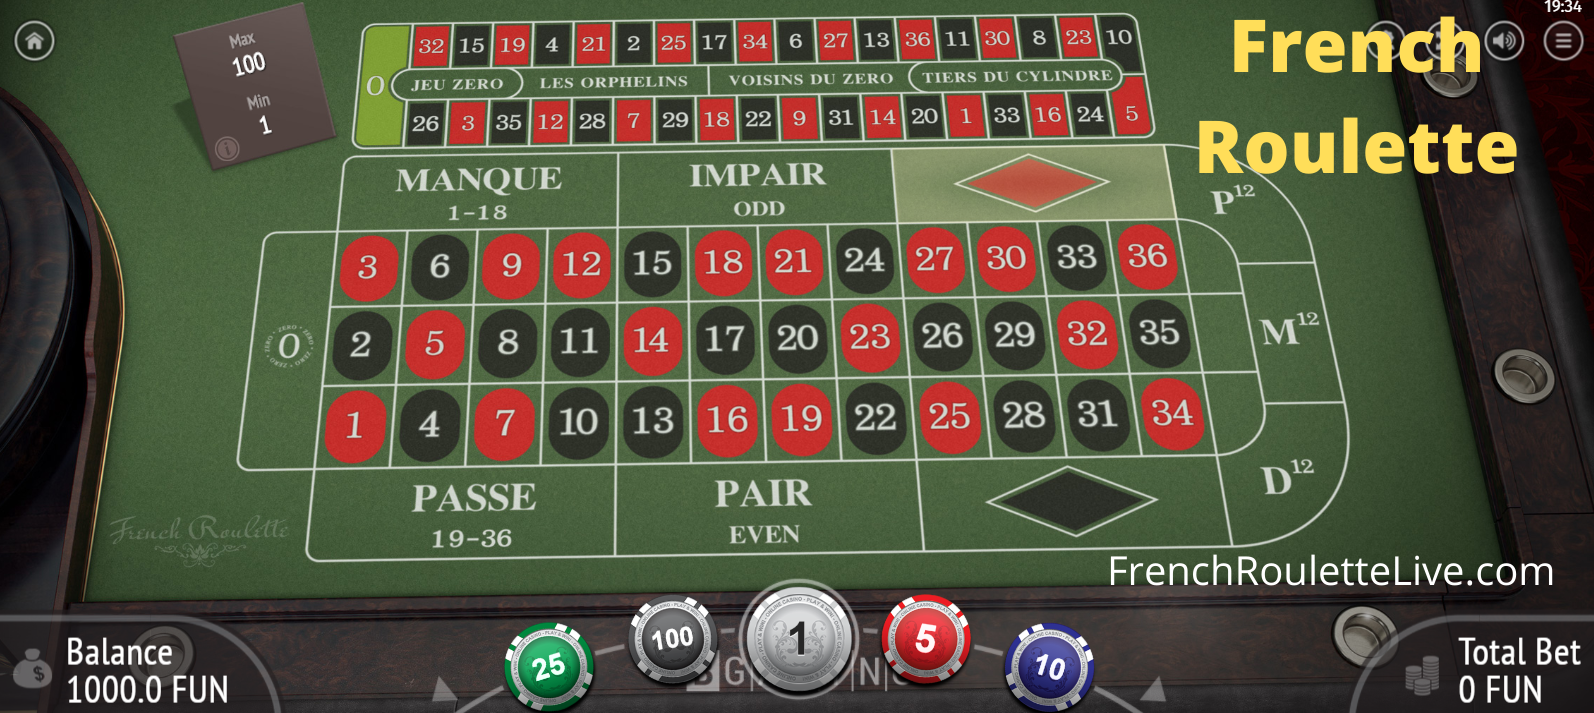 Roulette Table Layouts - Main Table and Racetrack